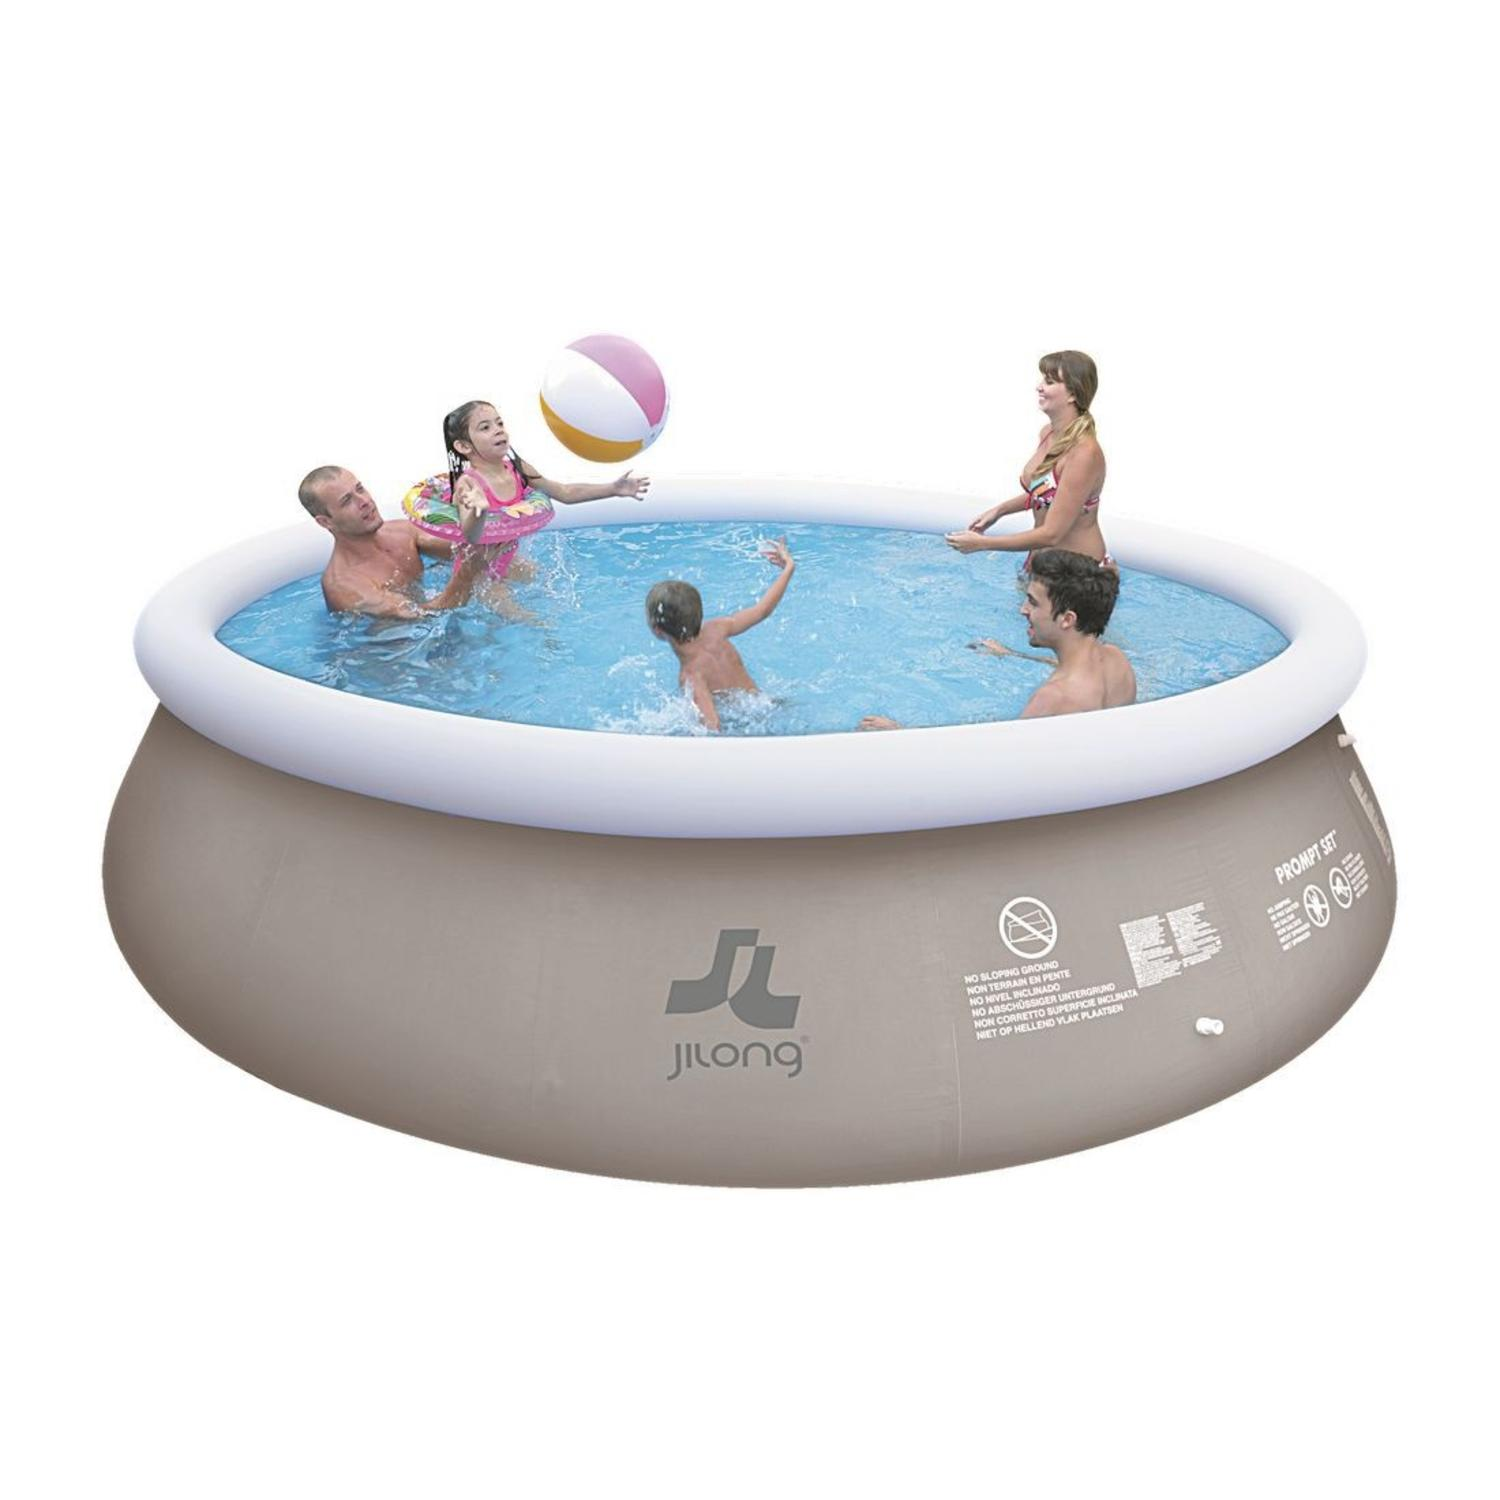 "18' x 48"" Gray and White Inflatable Above Ground Prompt Swimming Pool Set by Above Ground Pools"